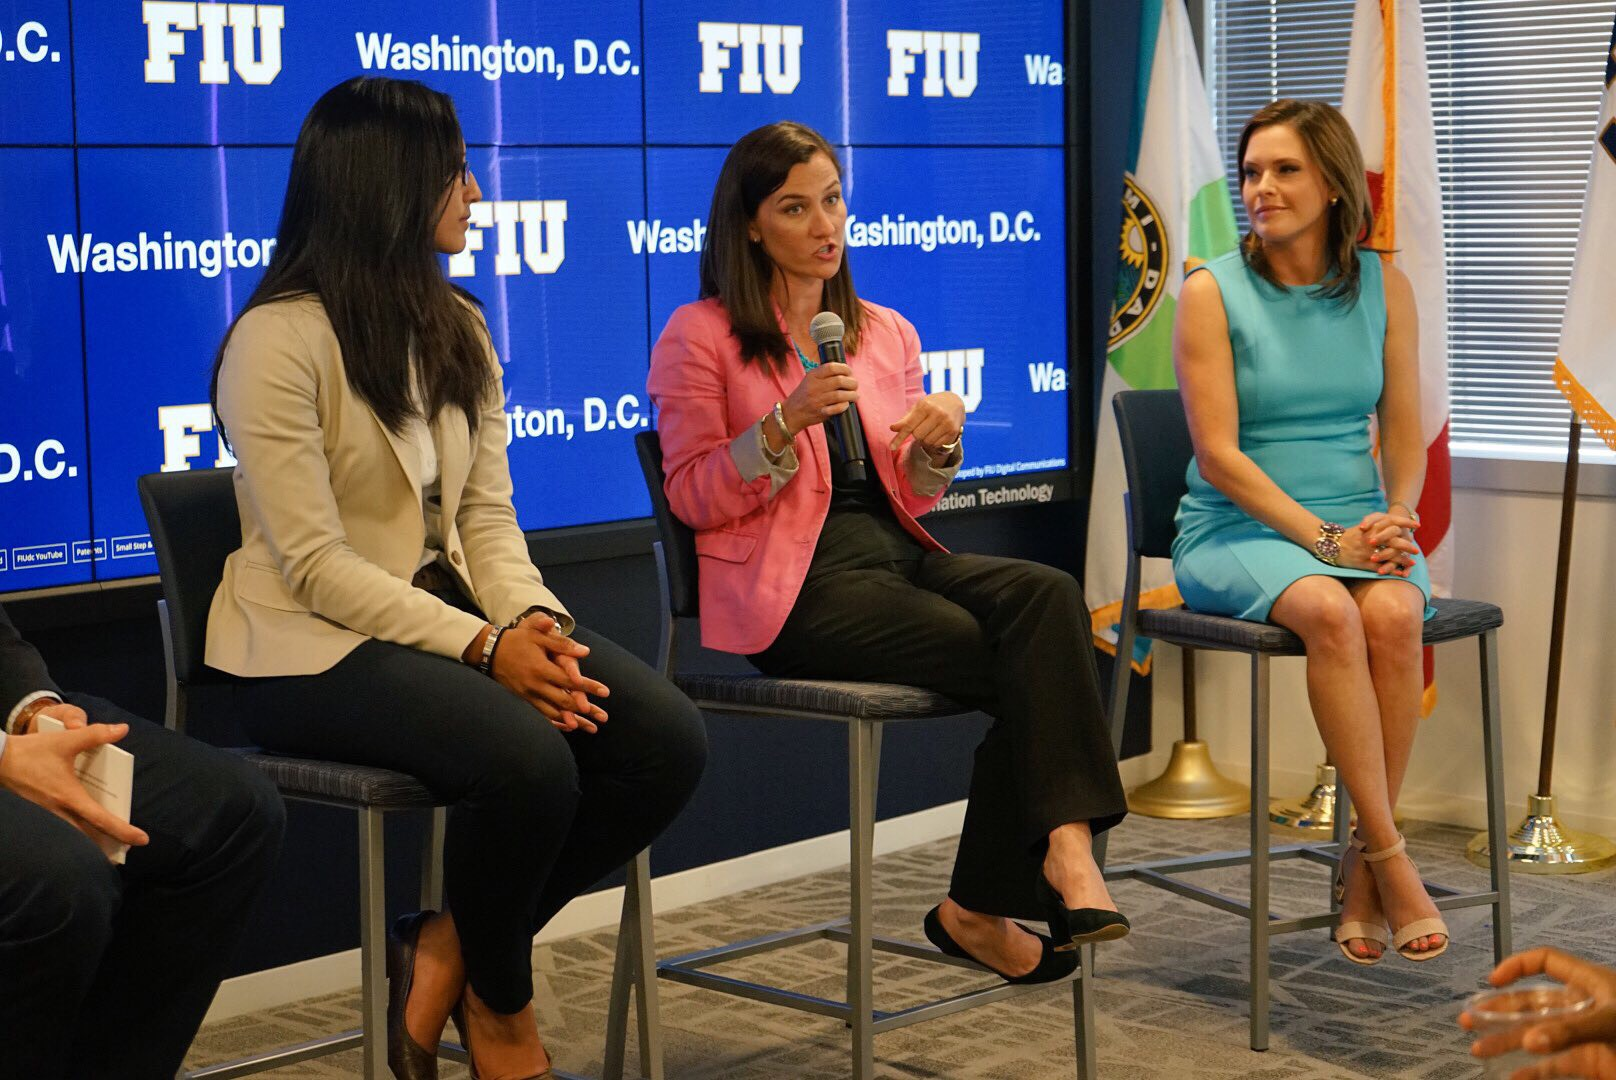 Arelis Hernandez, Lauren Kane and Mercedes Schlapp as panelists on Media & Communications: An Inside Look